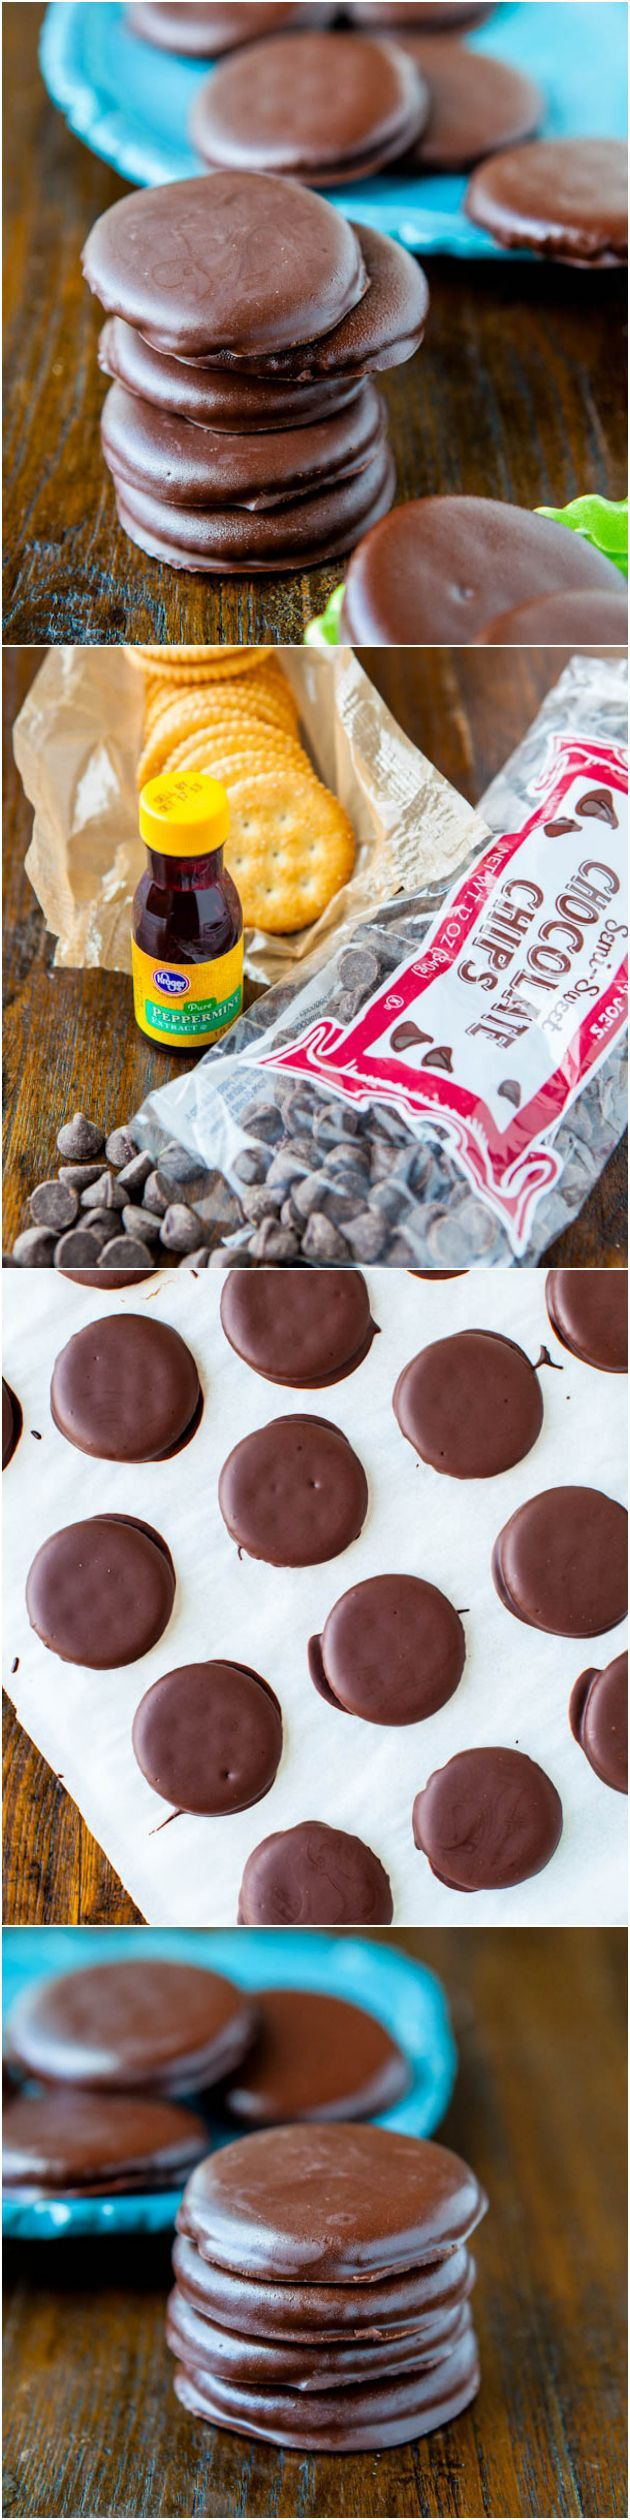 Homemade Thin Mints (no-bake, vegan) | Healthy receipe exchange and t ...